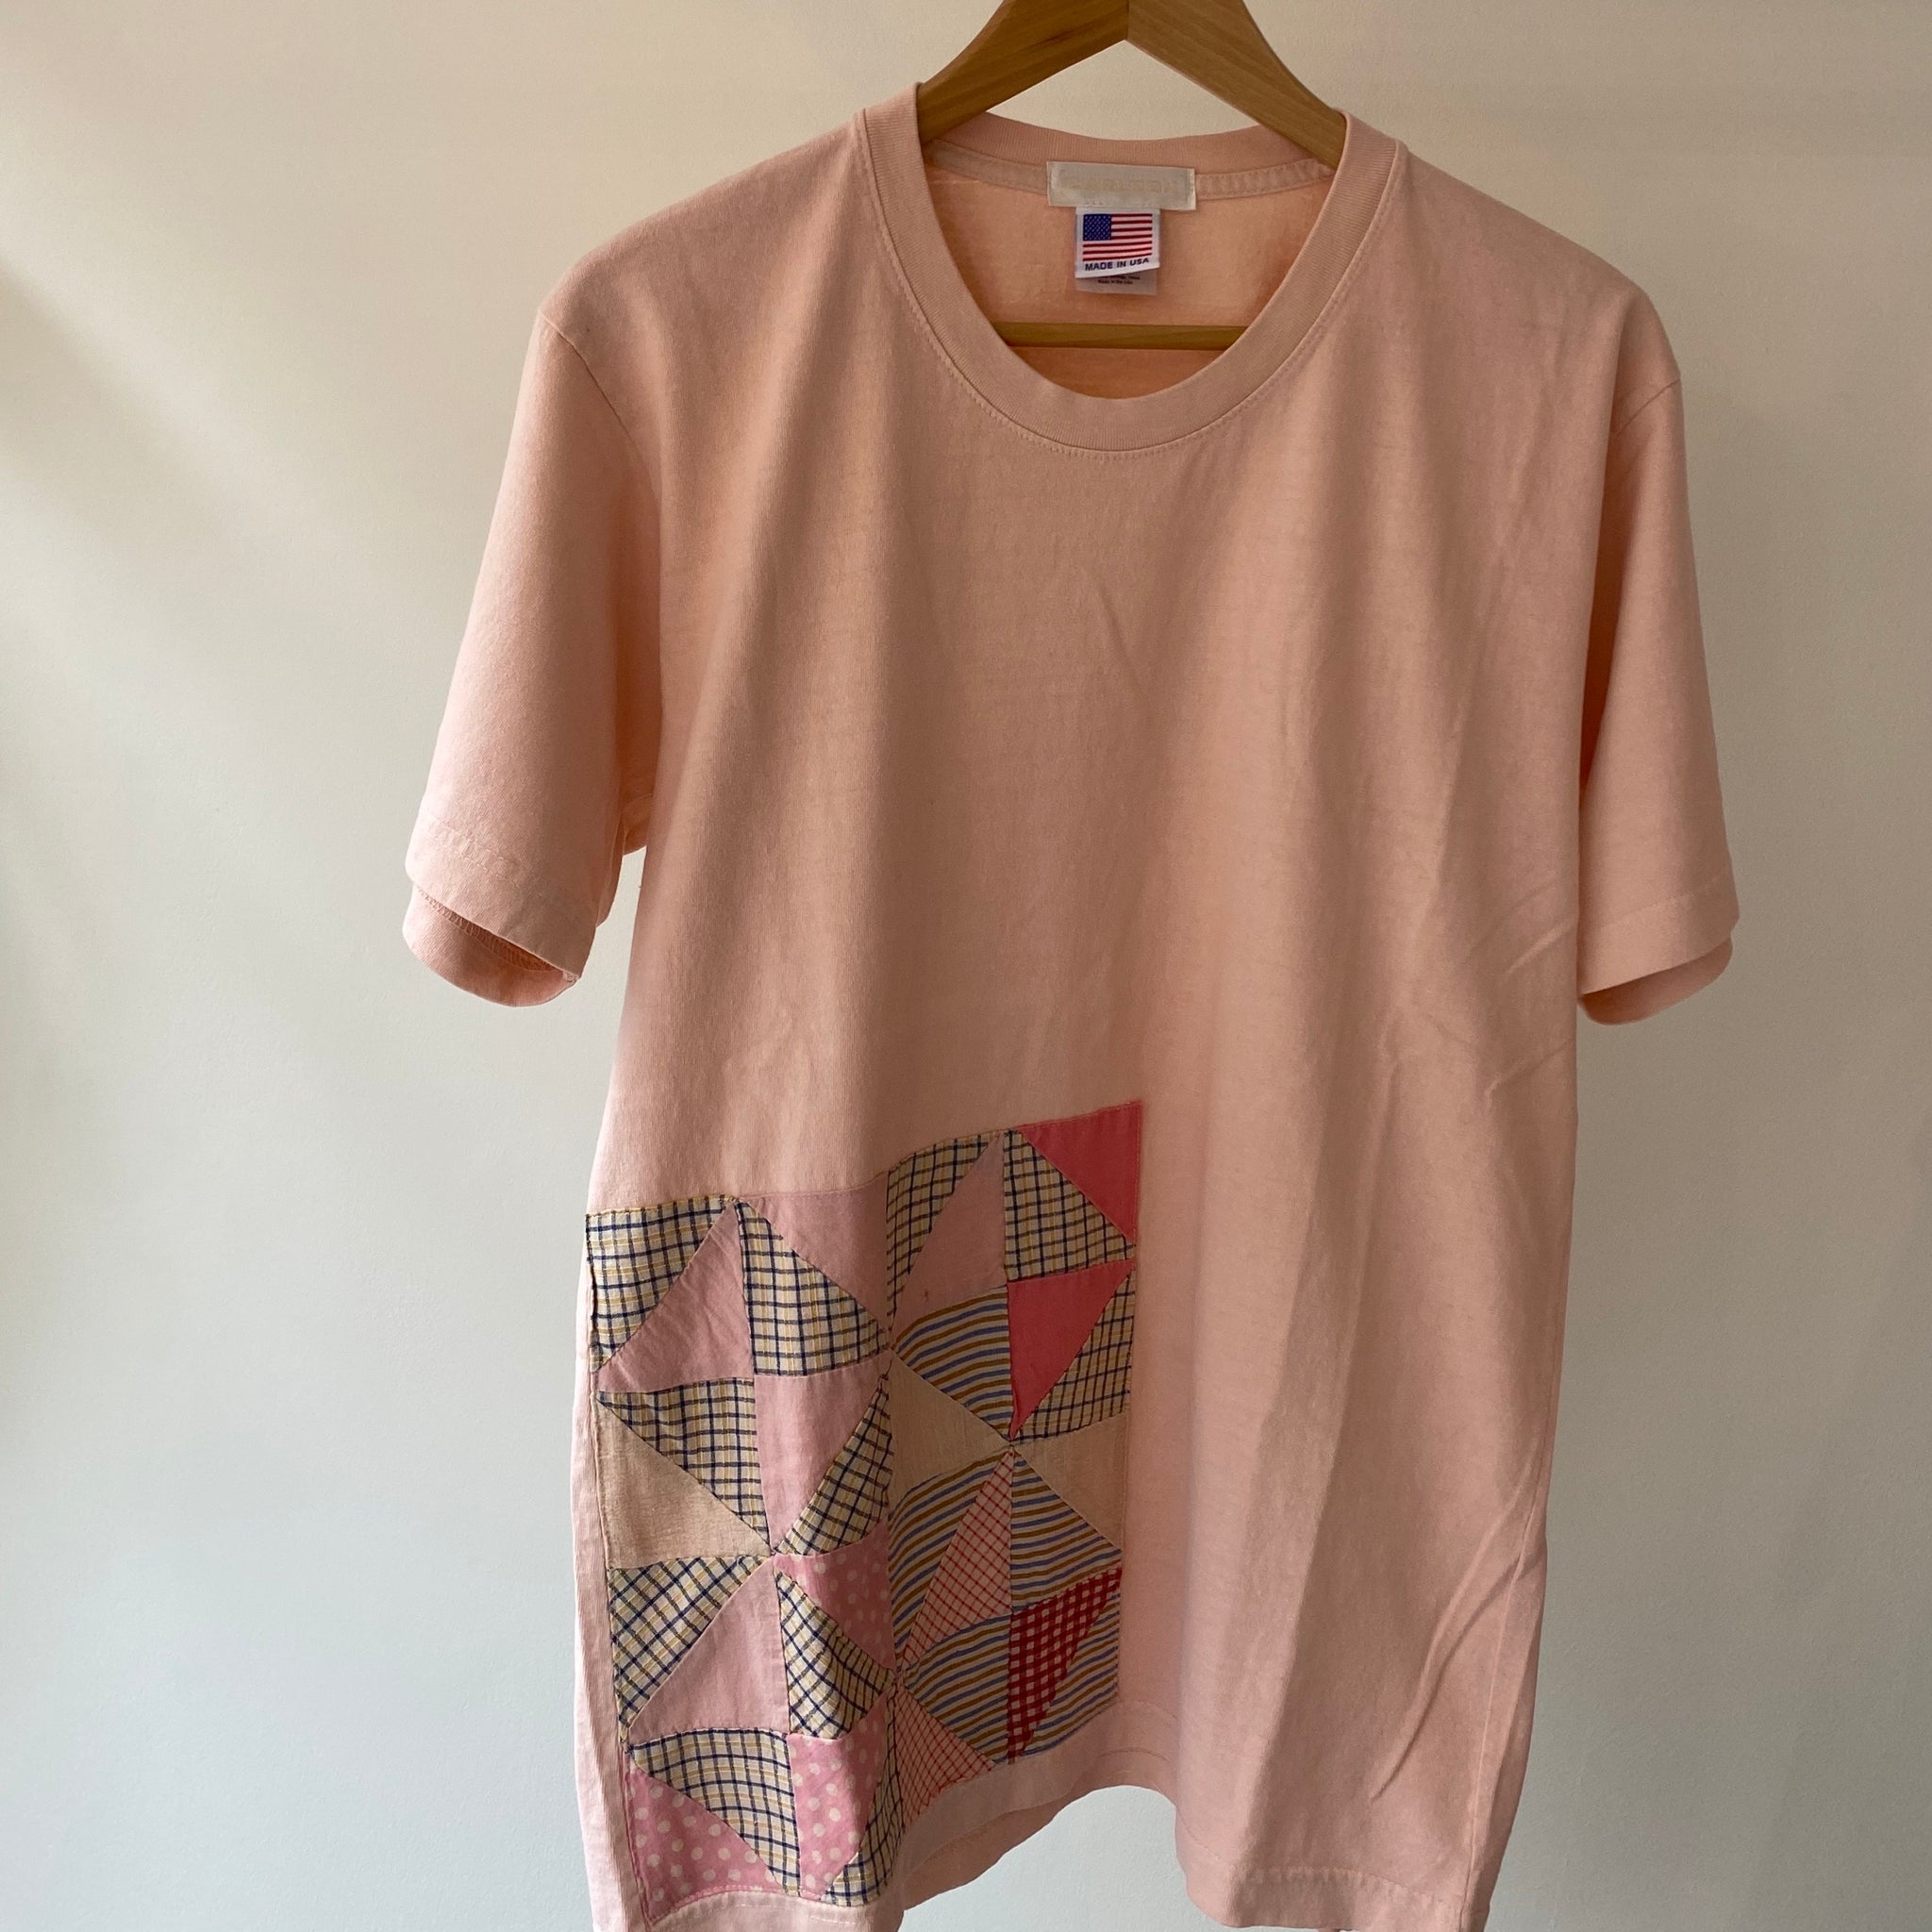 Carleen Quilt Patch Tee Pink Overdye in Small